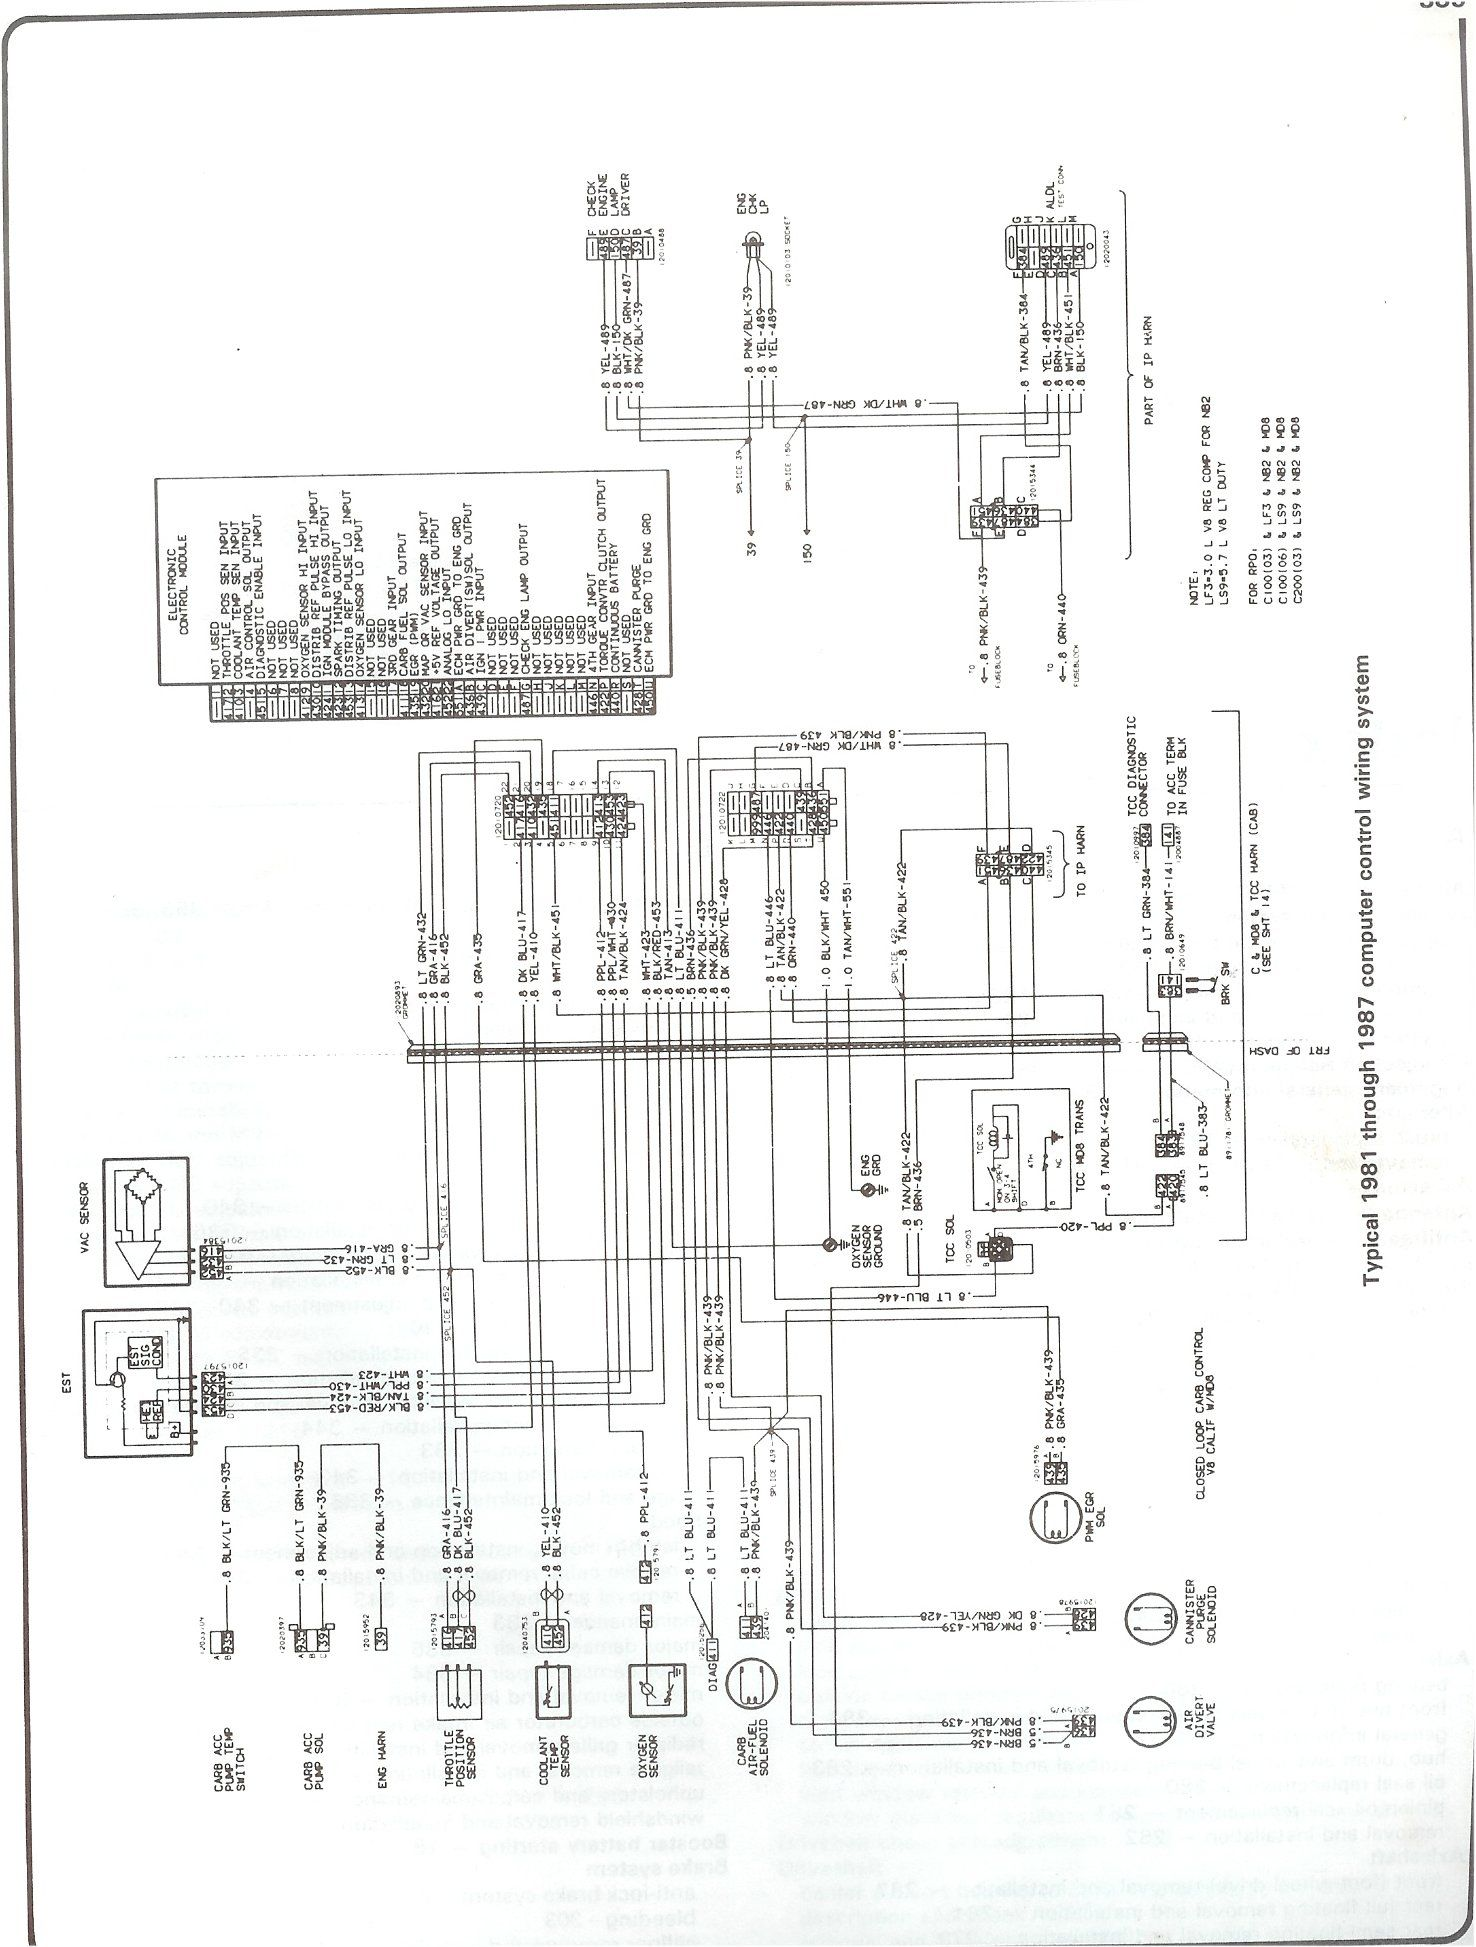 1987 chevy truck headlight wiring diagram chevy truck parts for 1936 to 1987 chevrolet and gmc ... #13